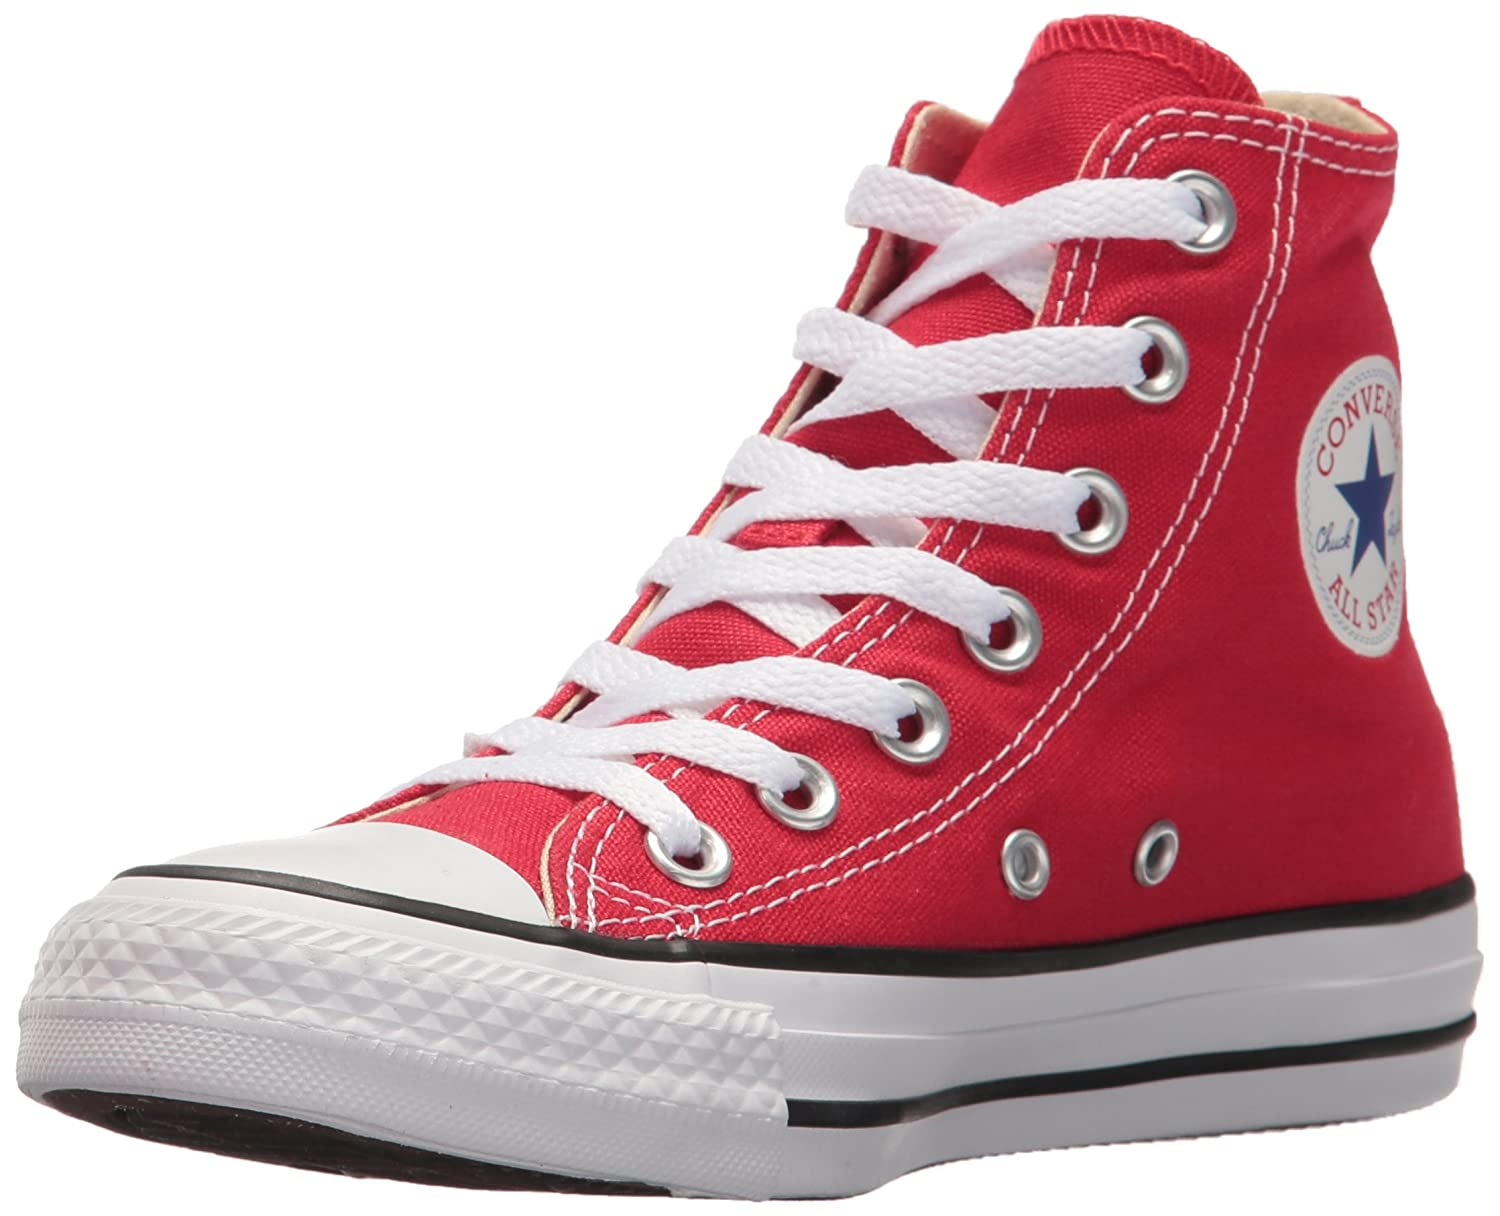 Converse Ctas Core Hi, adulte Converse Baskets mode mixte mixte adulte f1a8ec6 - boatplans.space